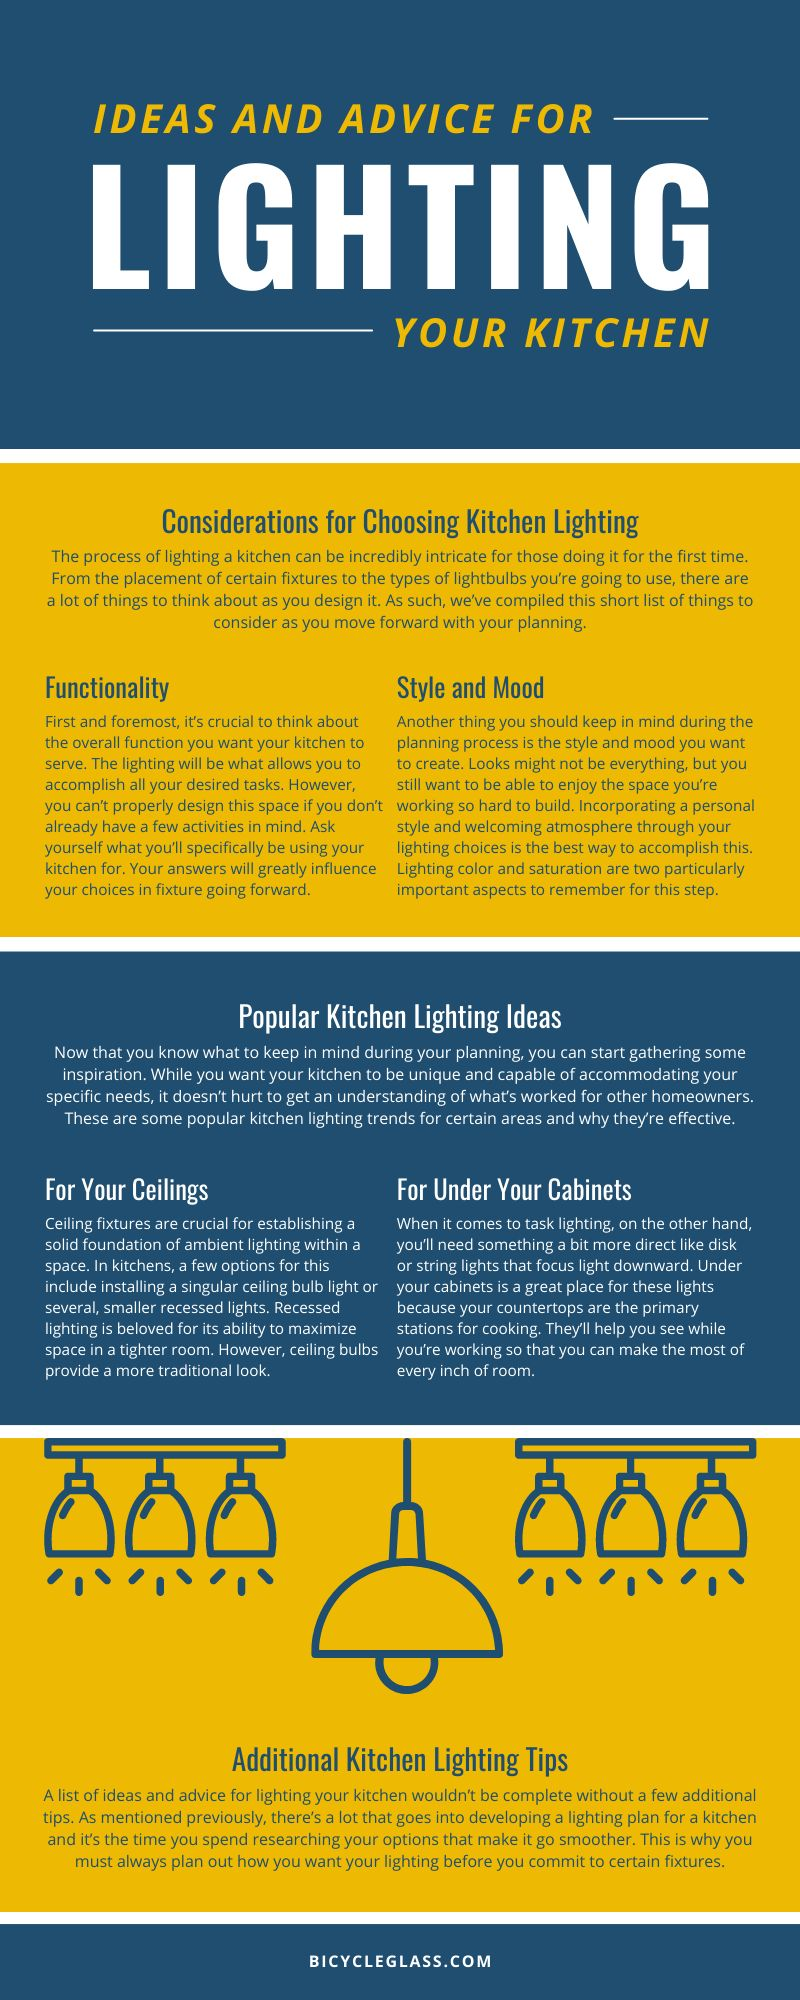 Ideas and Advice for Lighting Your Kitchen